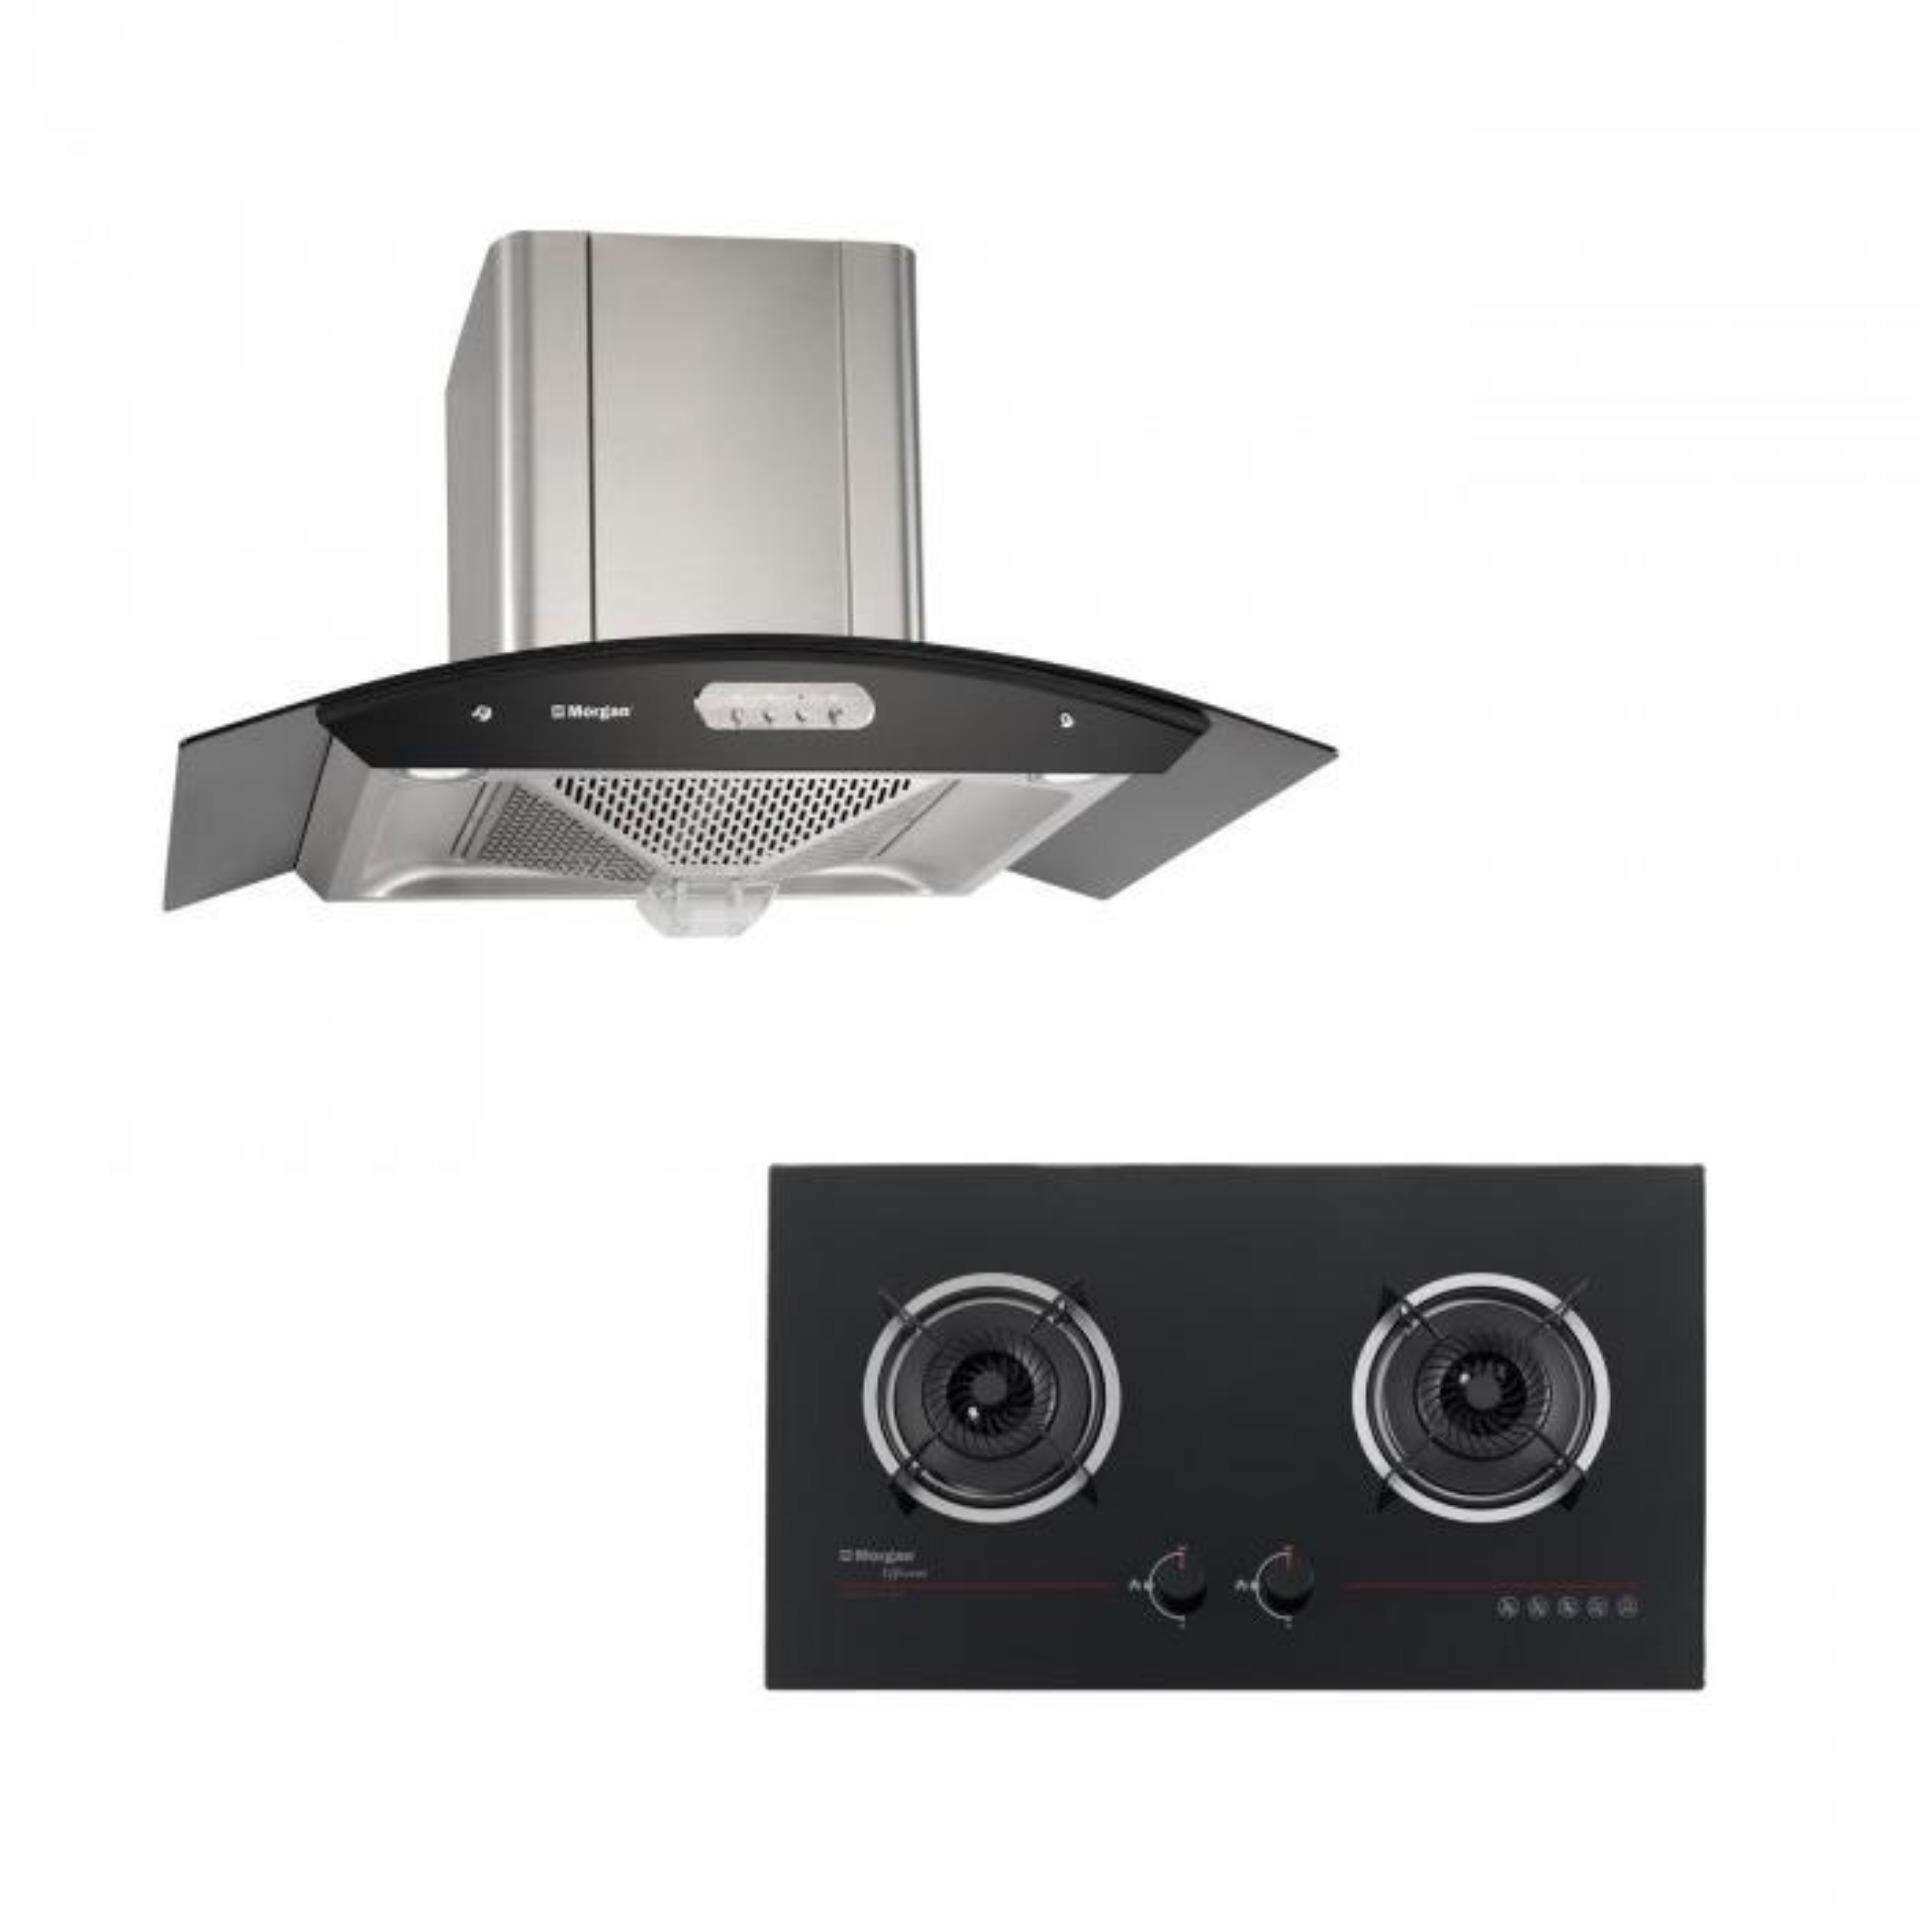 Morgan Designer Cooker Hood Mdh 920oc Built In Hob Mbh Gc1142bk